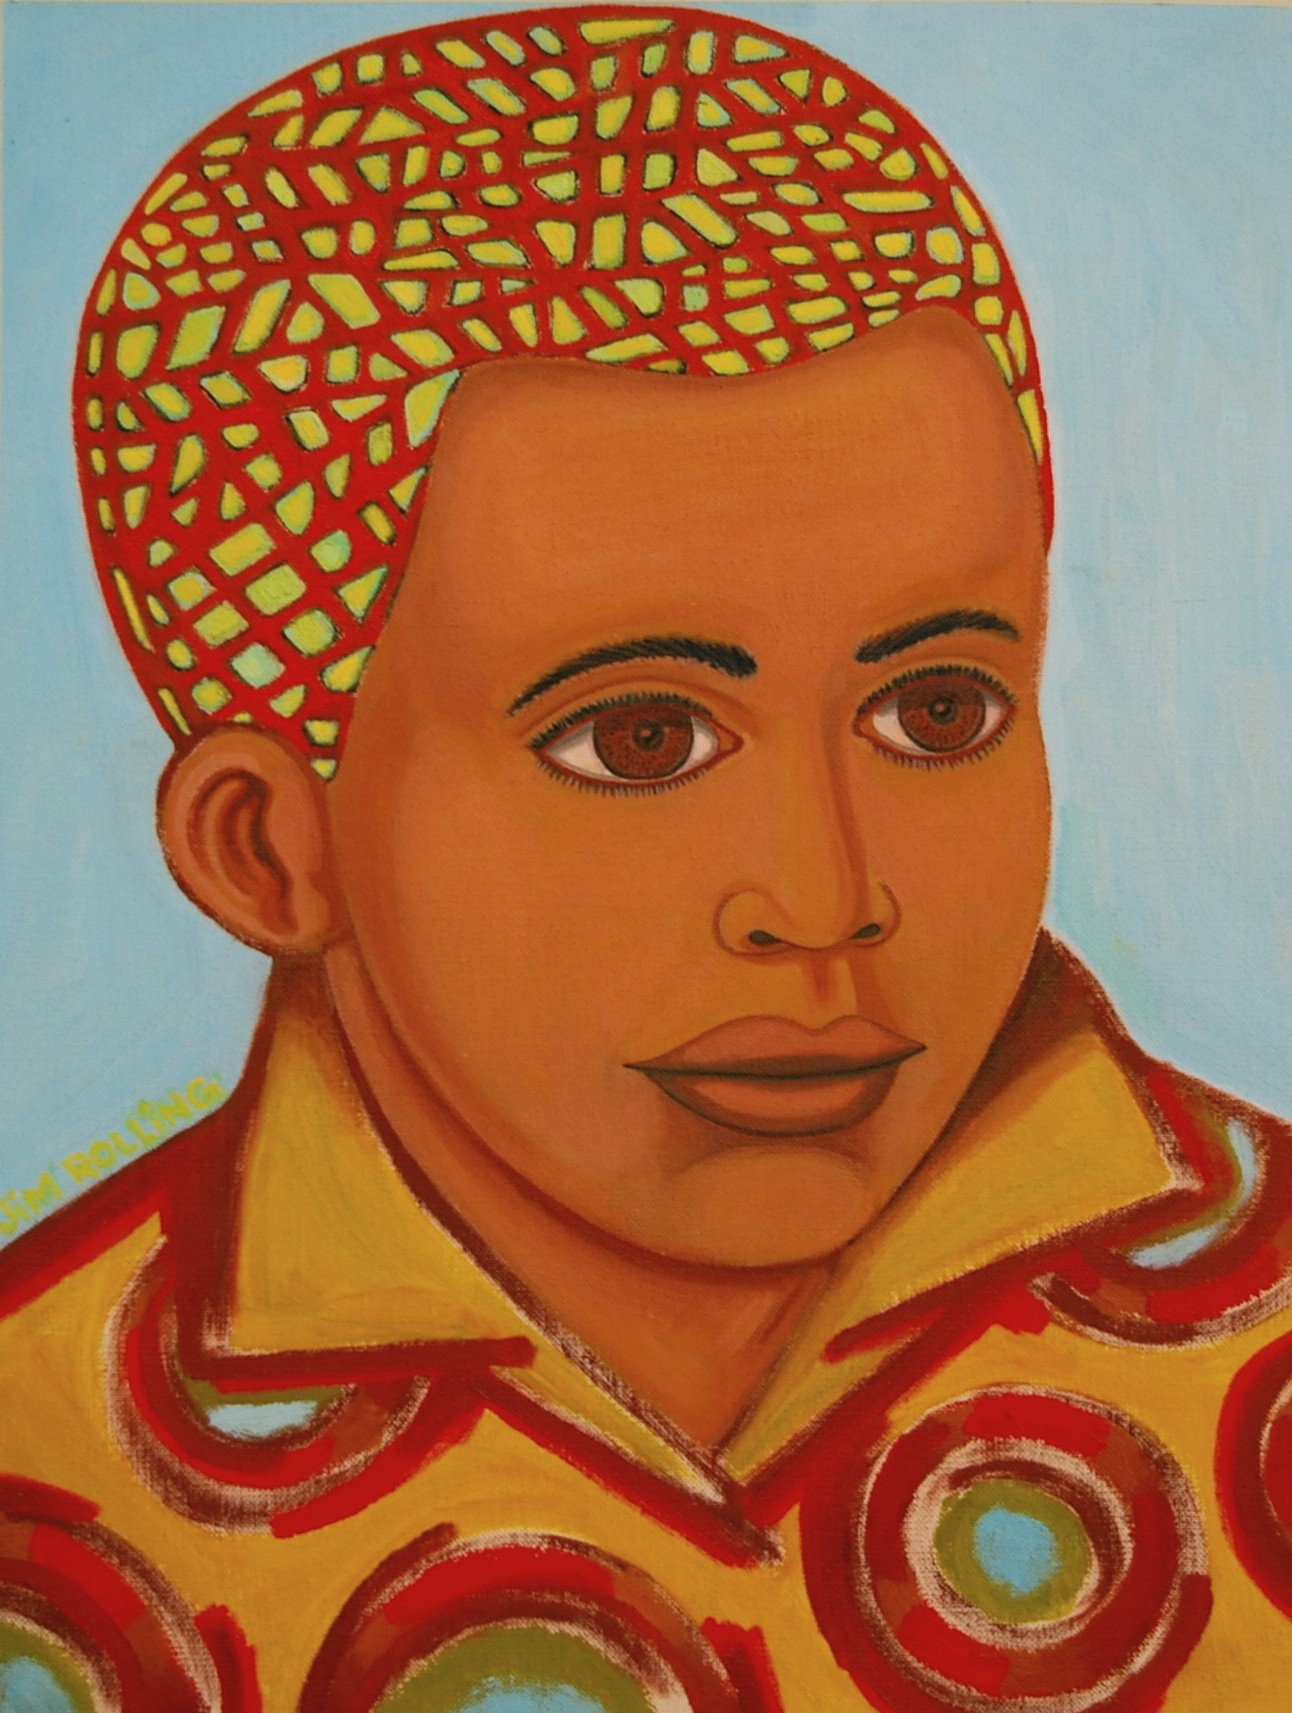 A stylized painting of the author as a young boy wearing a brightly colored yellow-orange shirt with a triangular collar that is covered with large red patterned circles. The boy is African American with a terra cotta skin color against a sky blue background. Instead of black hair, the boy's hair is a cross-hatched and connective network of bright red straight and contoured lines on a bright yellow-green field.